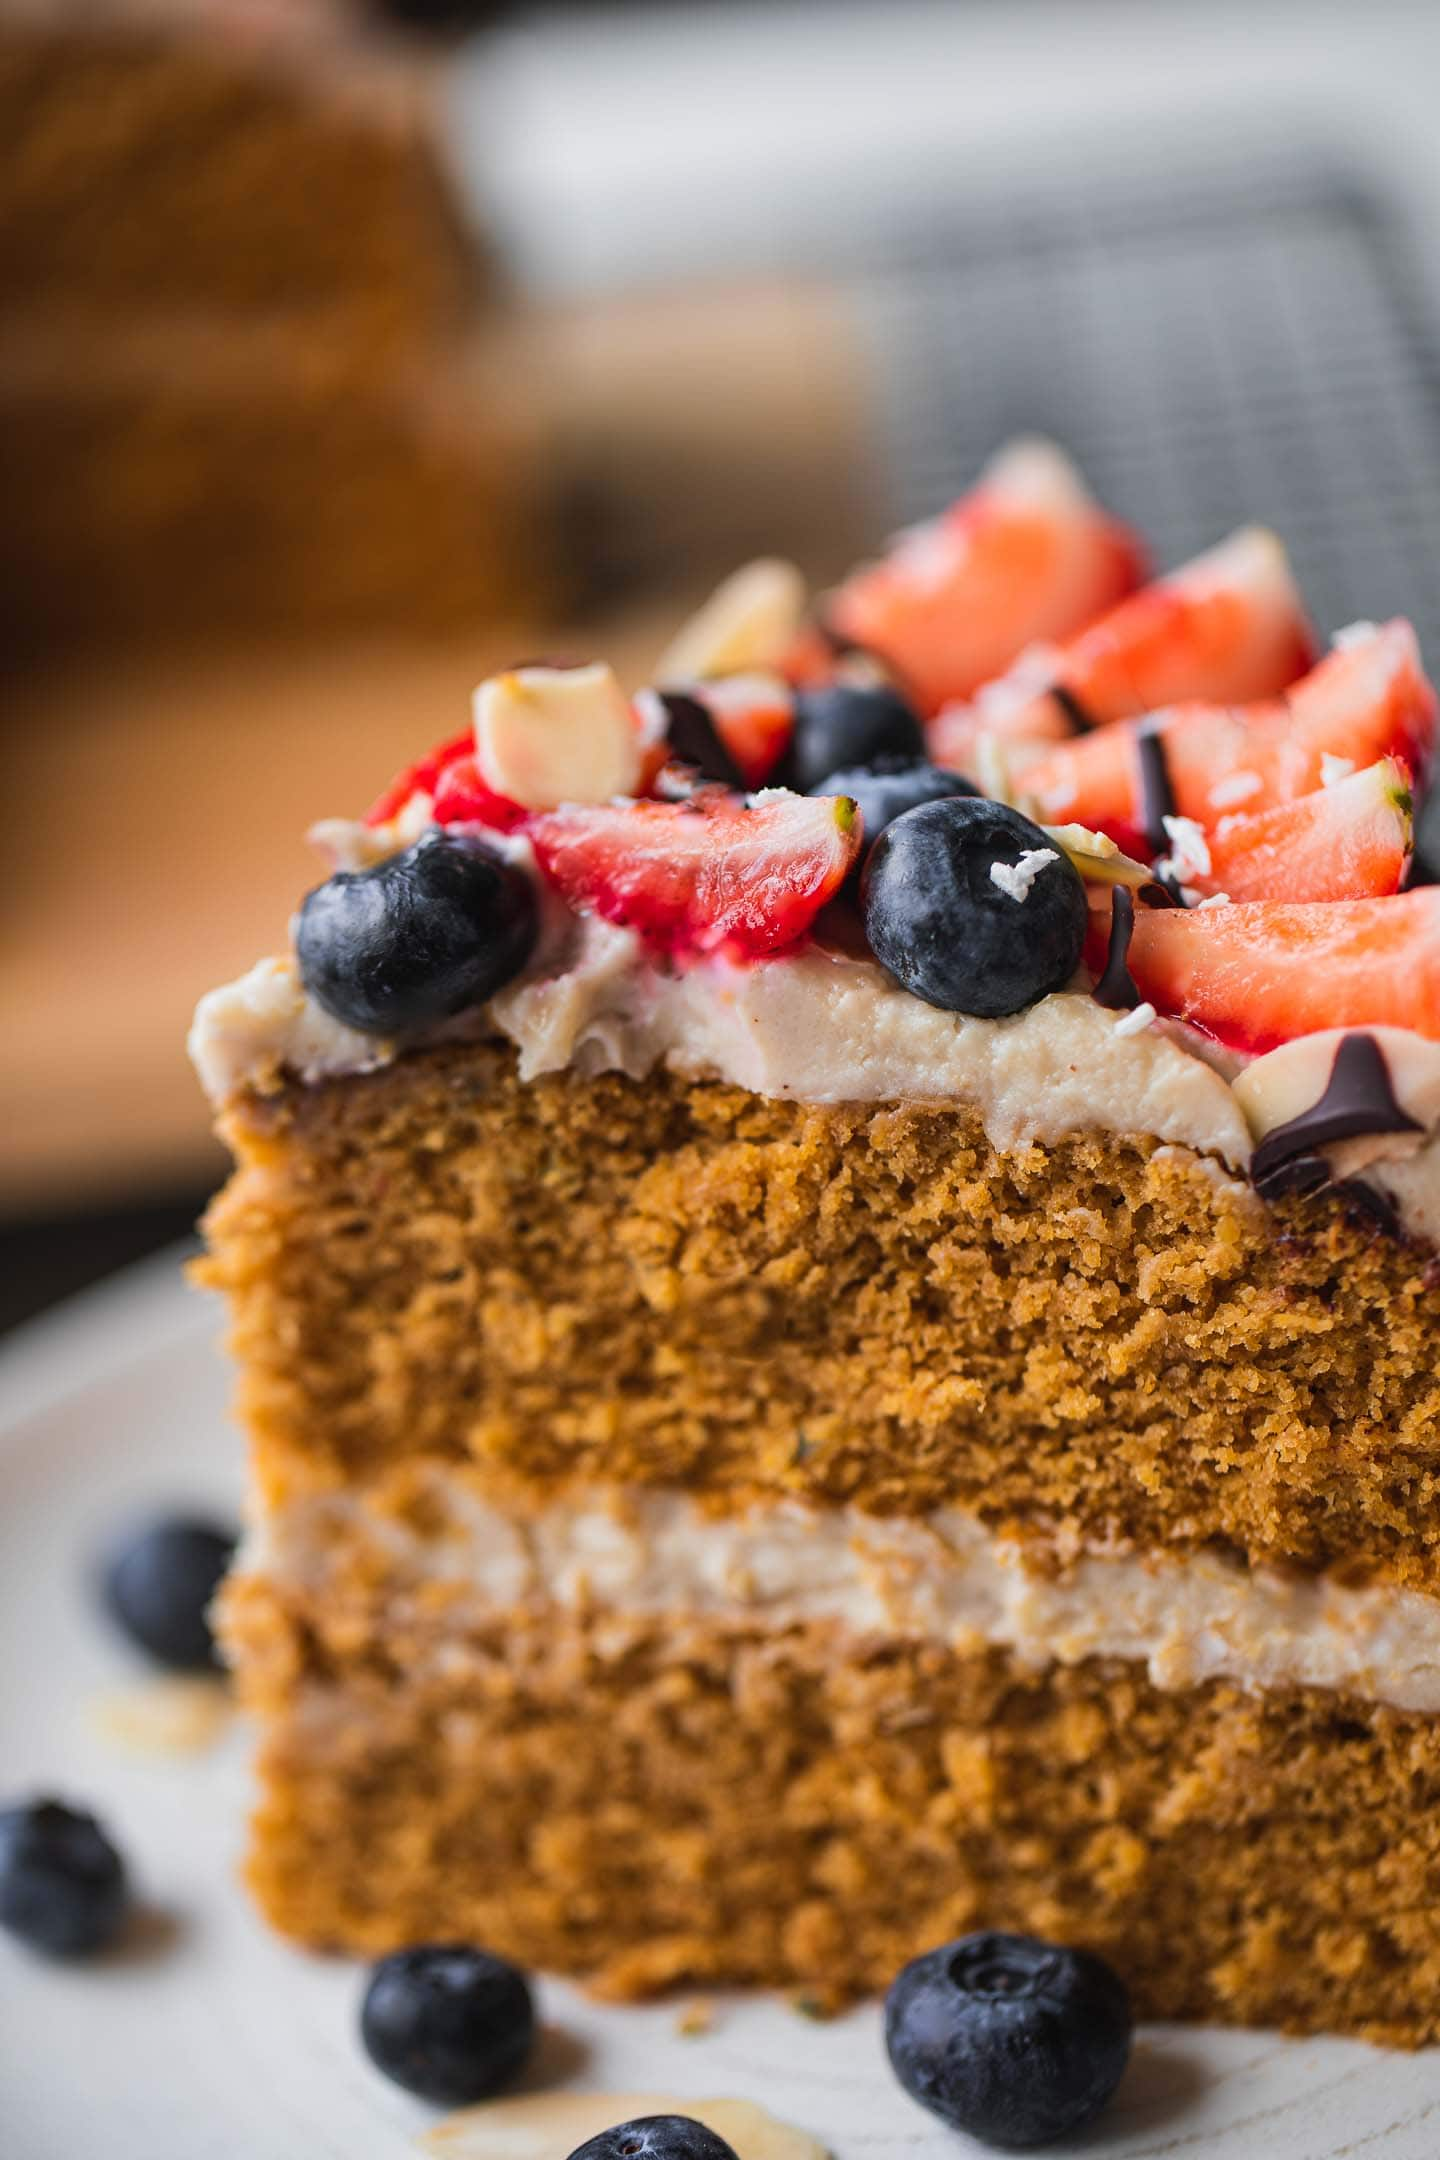 Closeup of a slice of cake with berries